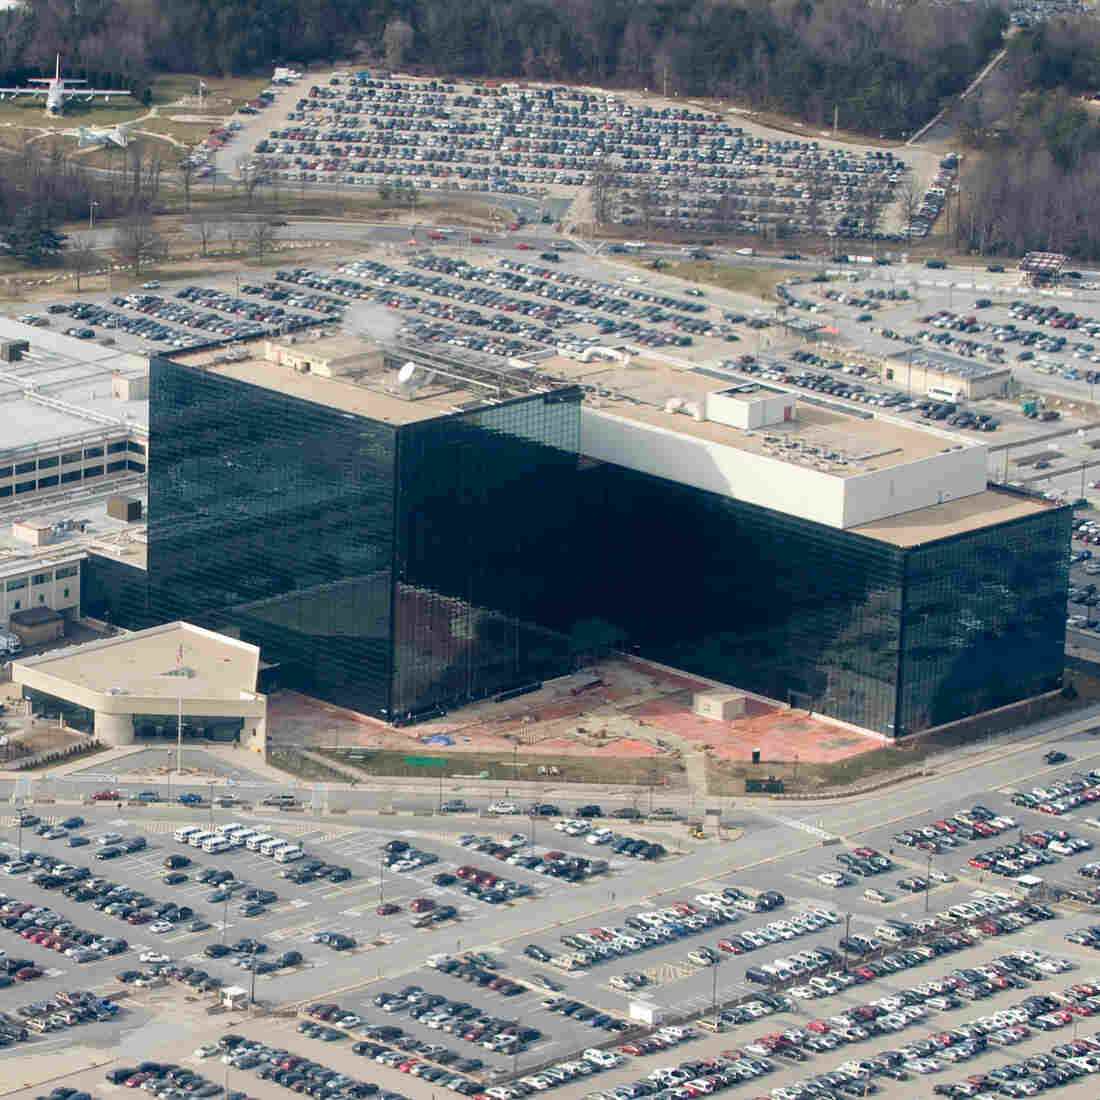 The National Security Agency headquarters at Fort Meade, Md.